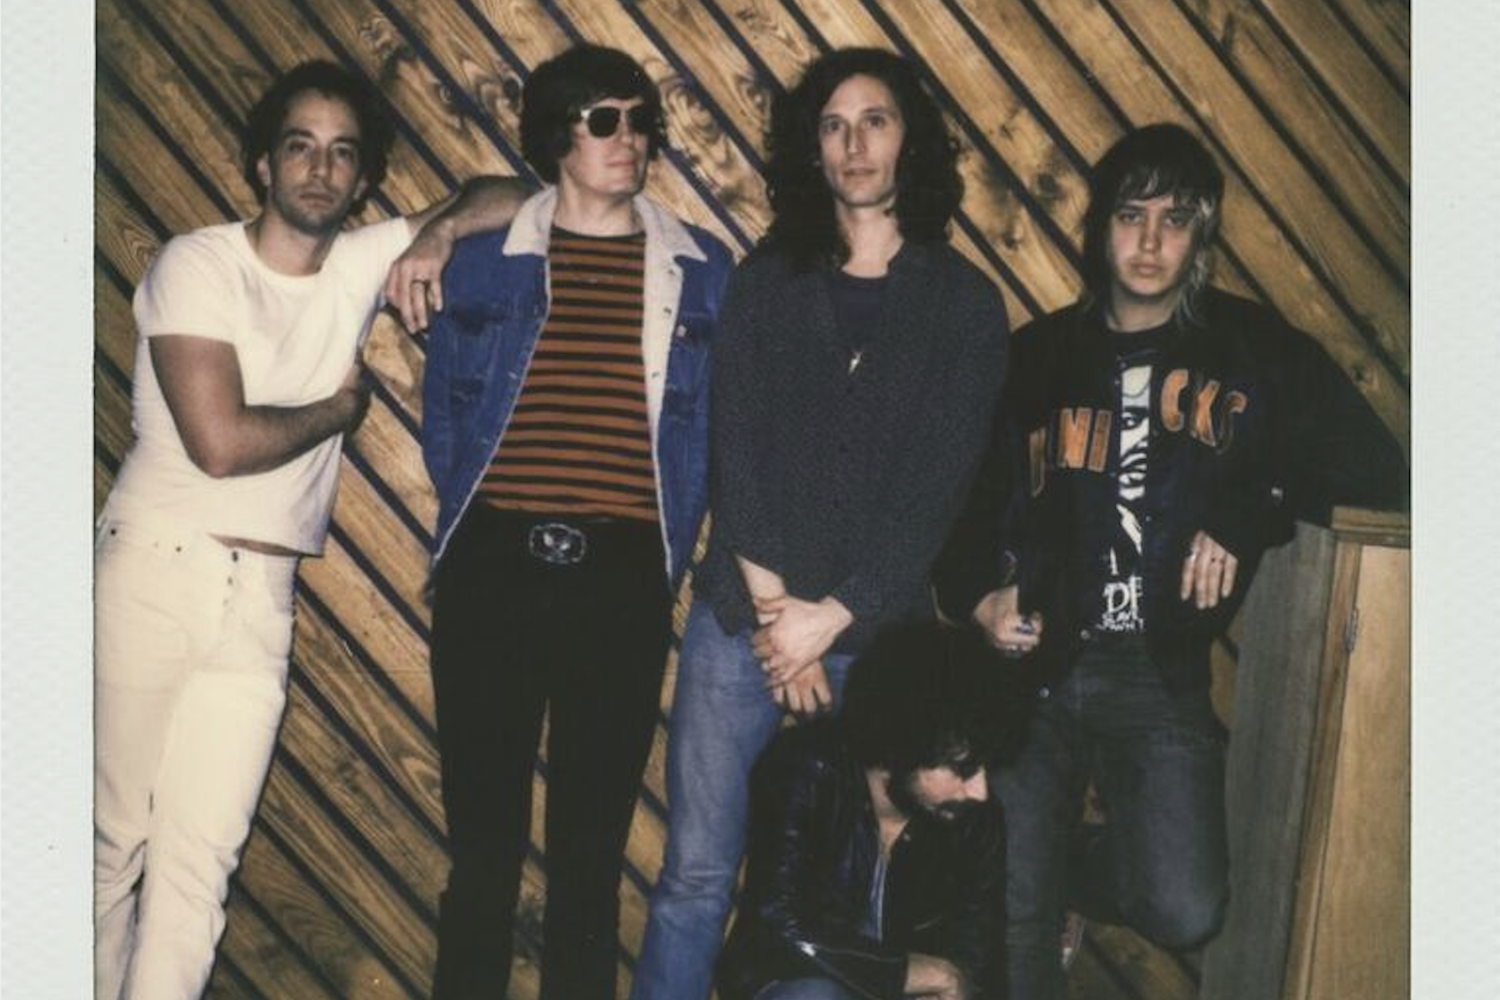 The Strokes at All Points East 2019: The dream setlist